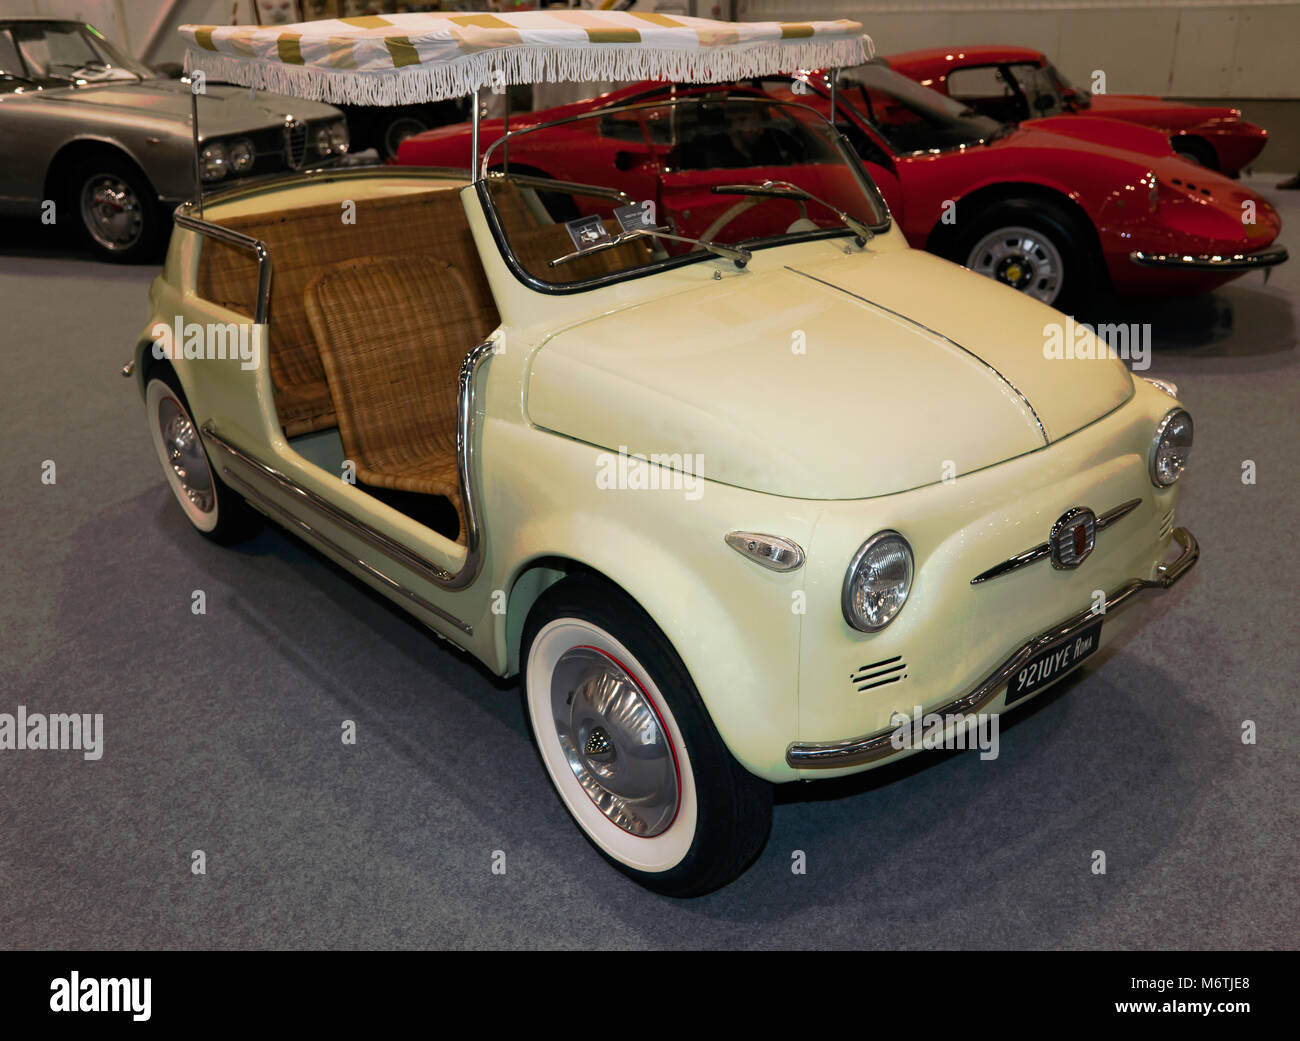 A 1958 Fiat Jolly, on display at the 2018 London Classic Car Showl - Stock Image